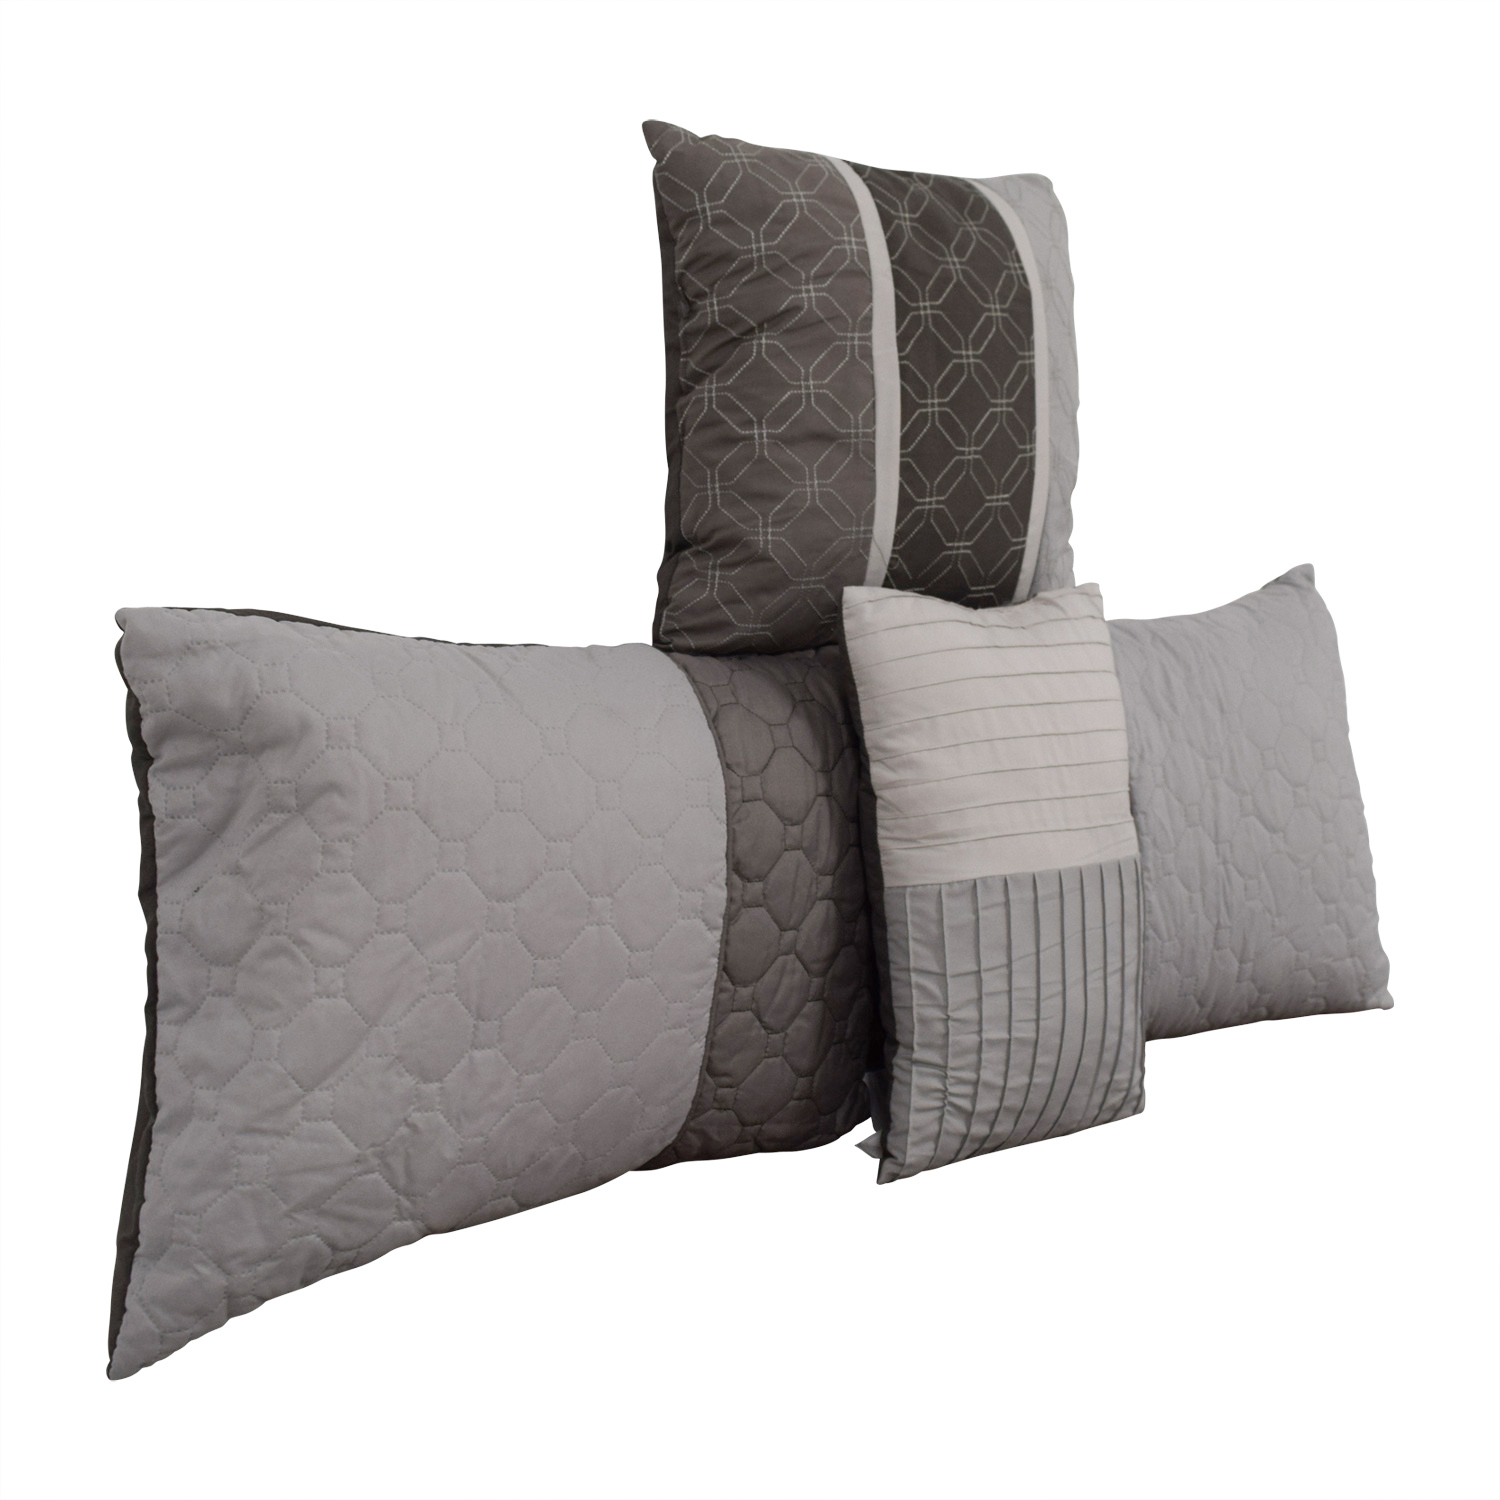 Macy's Macy's Grey Decorative Toss Pillows price